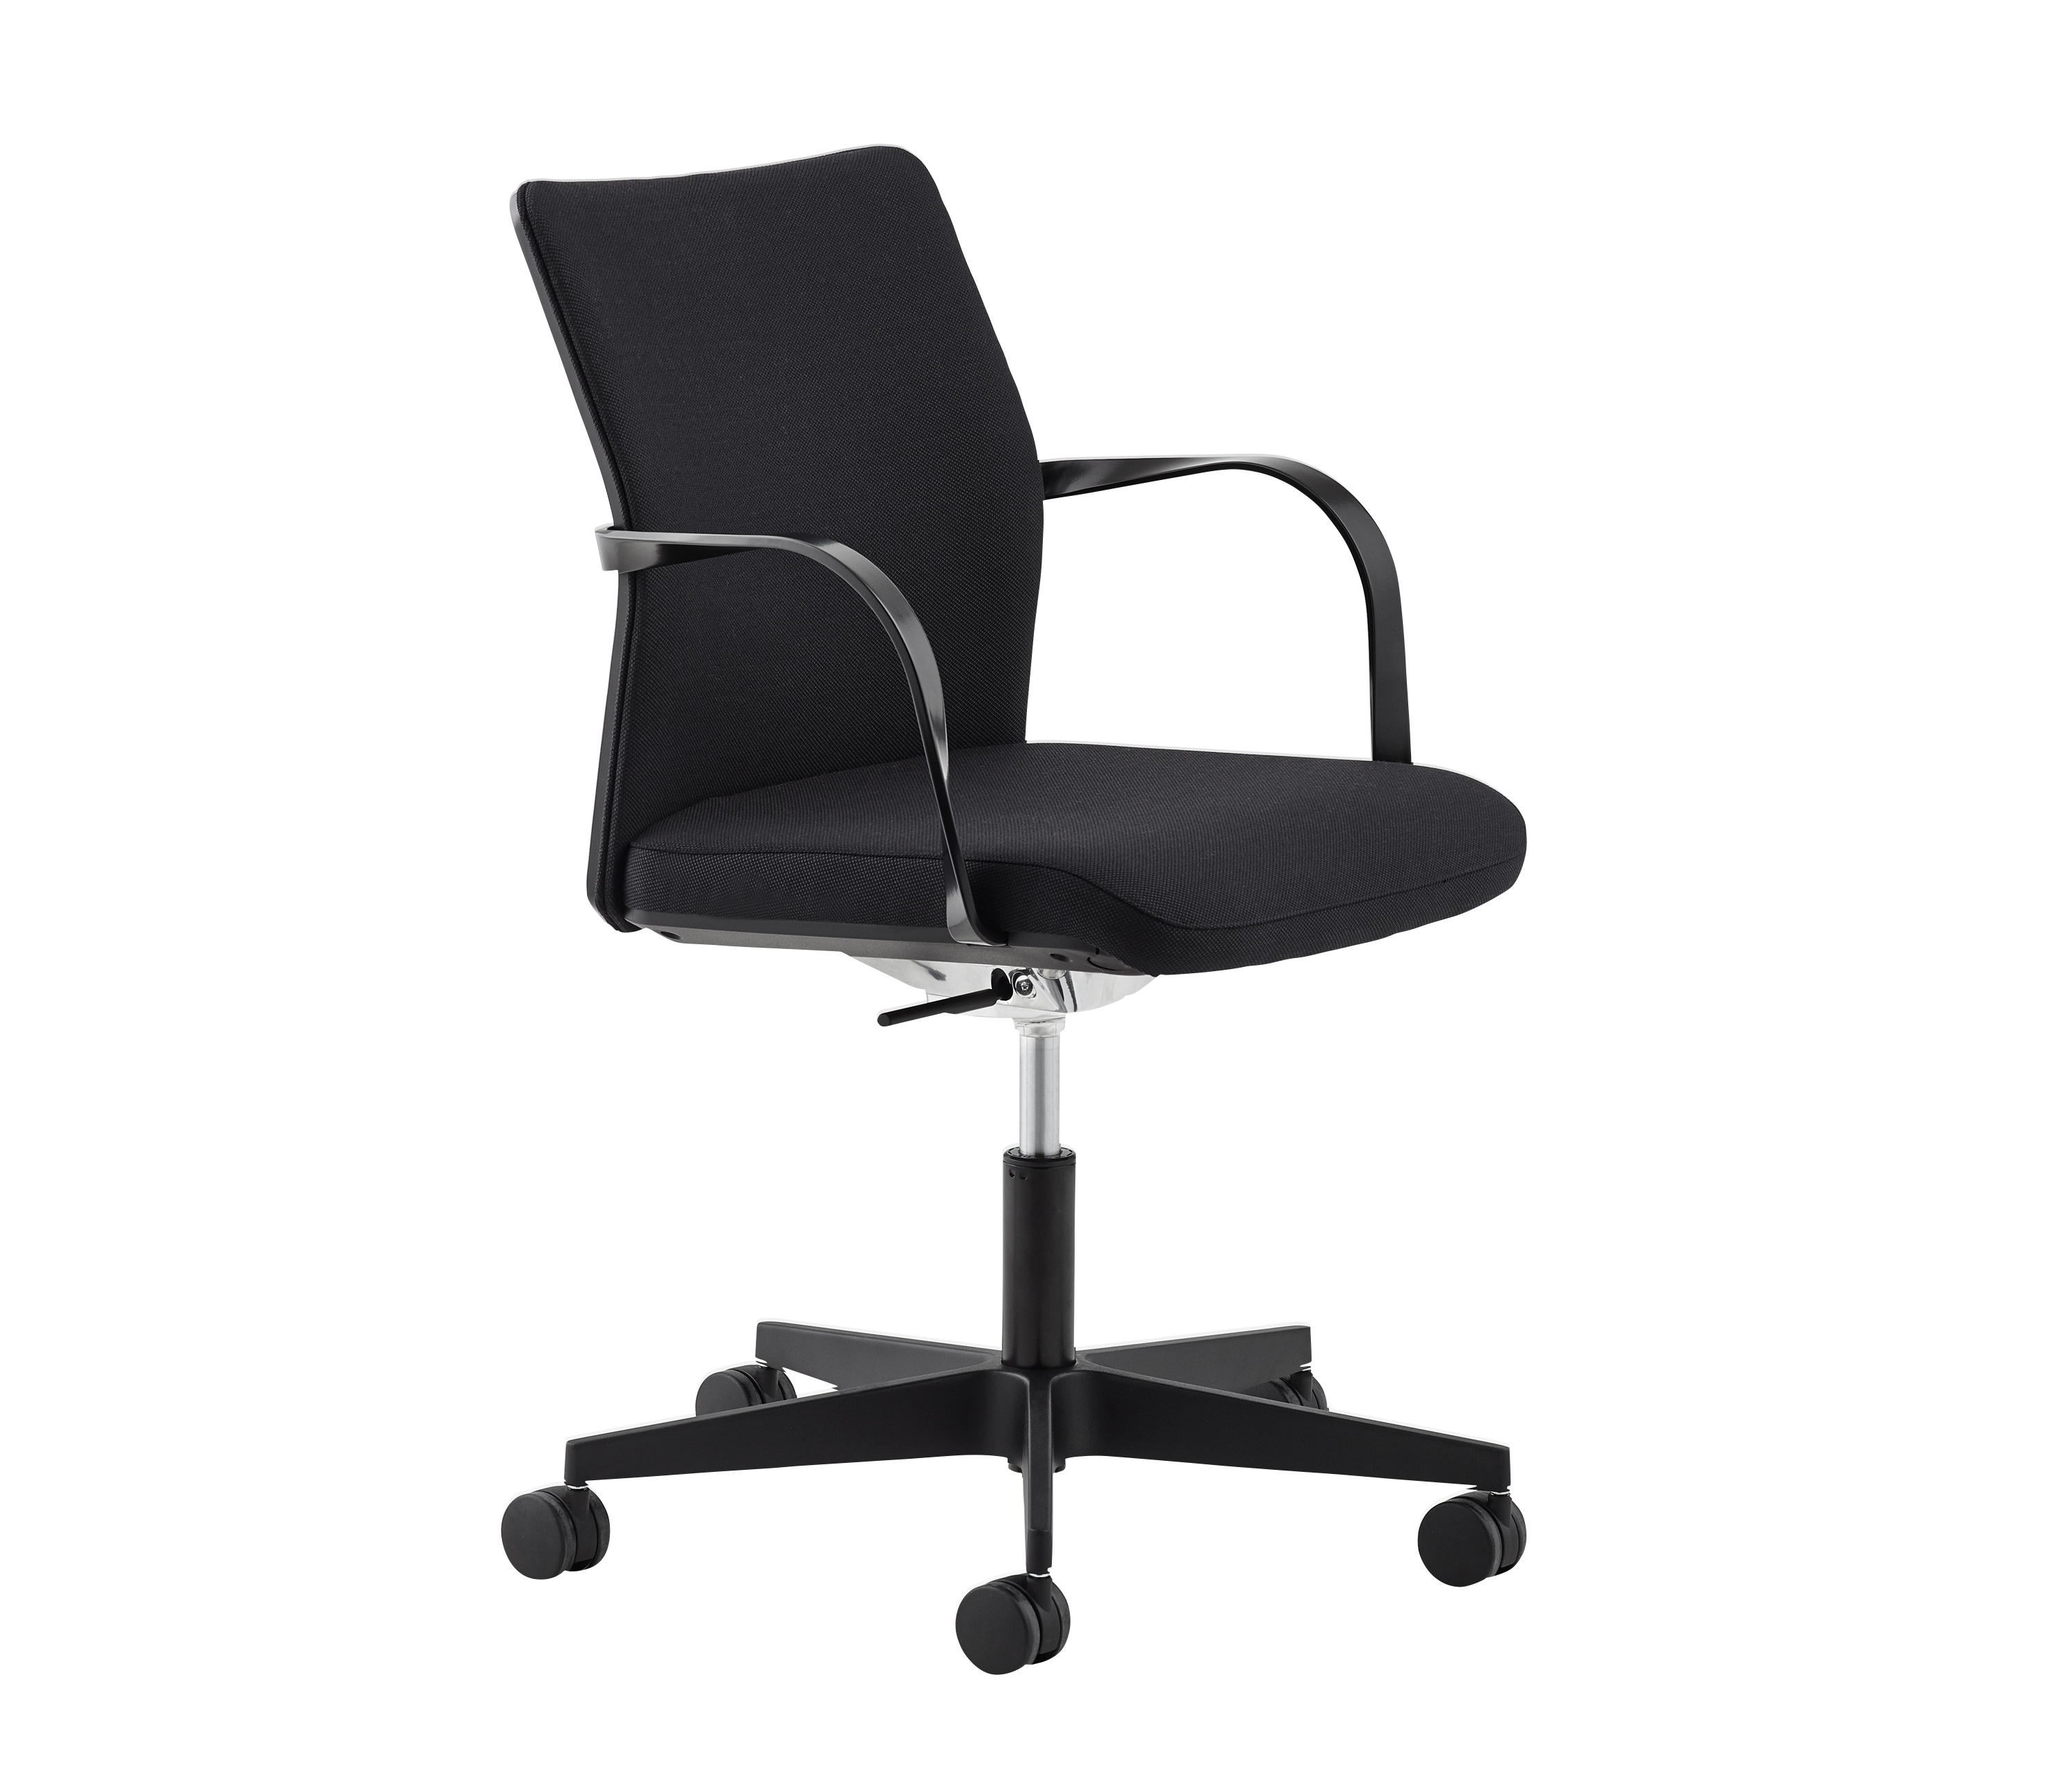 mn star chair  task chairs from howe  architonic - mn star chair by howe  task chairs